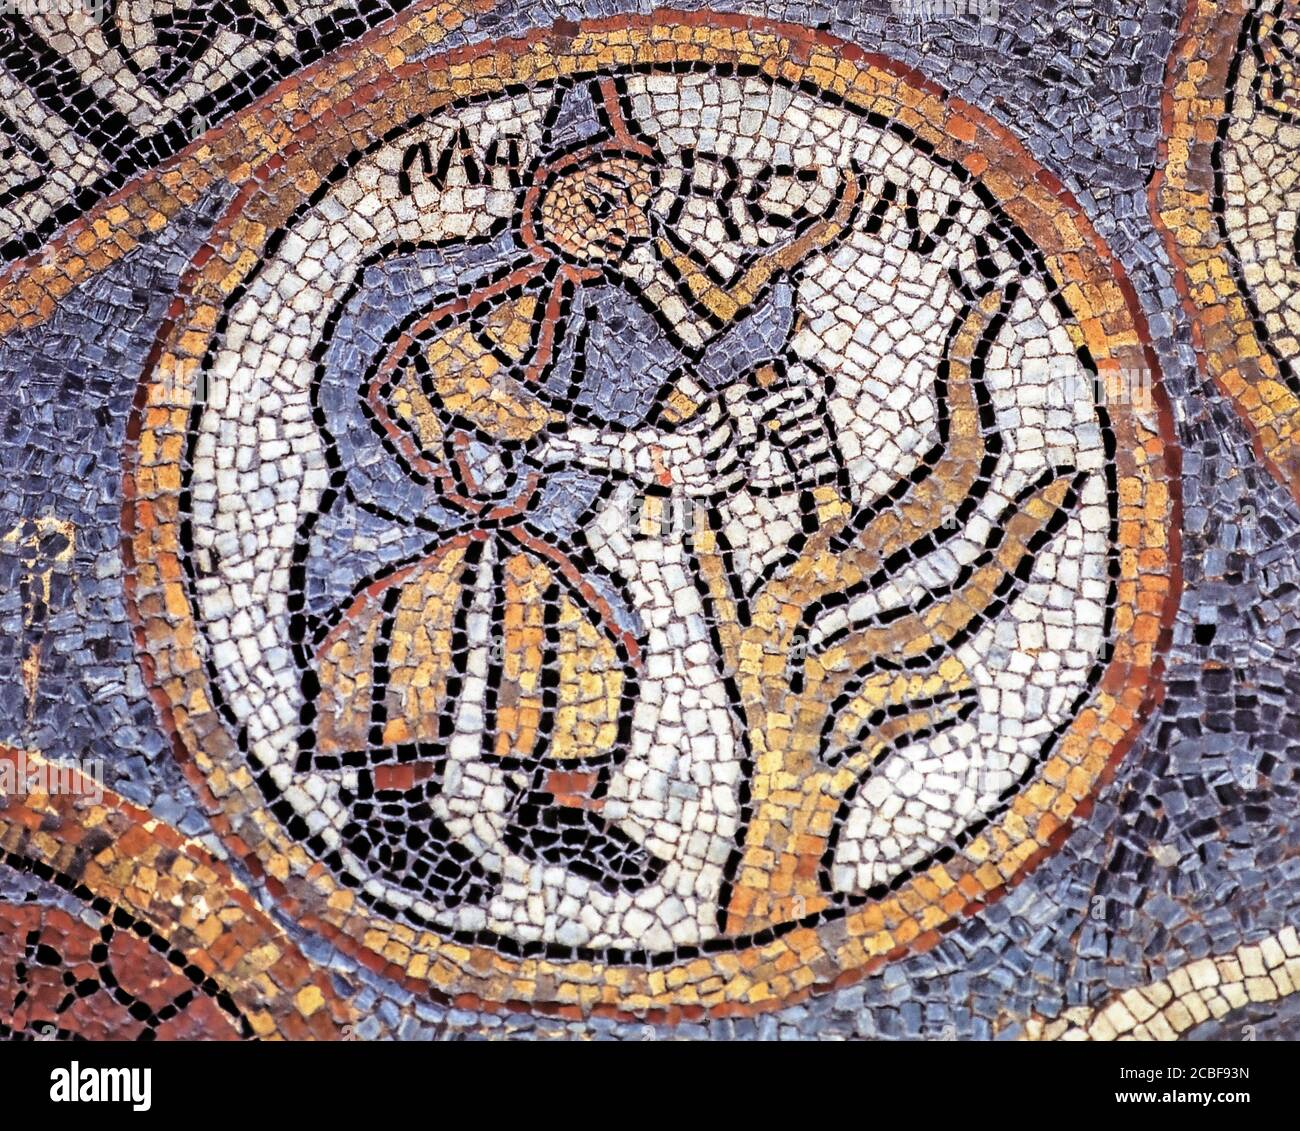 Italy Valle D'Aosta - Aosta Cathedral Mosaic of the Floor - March Stock Photo